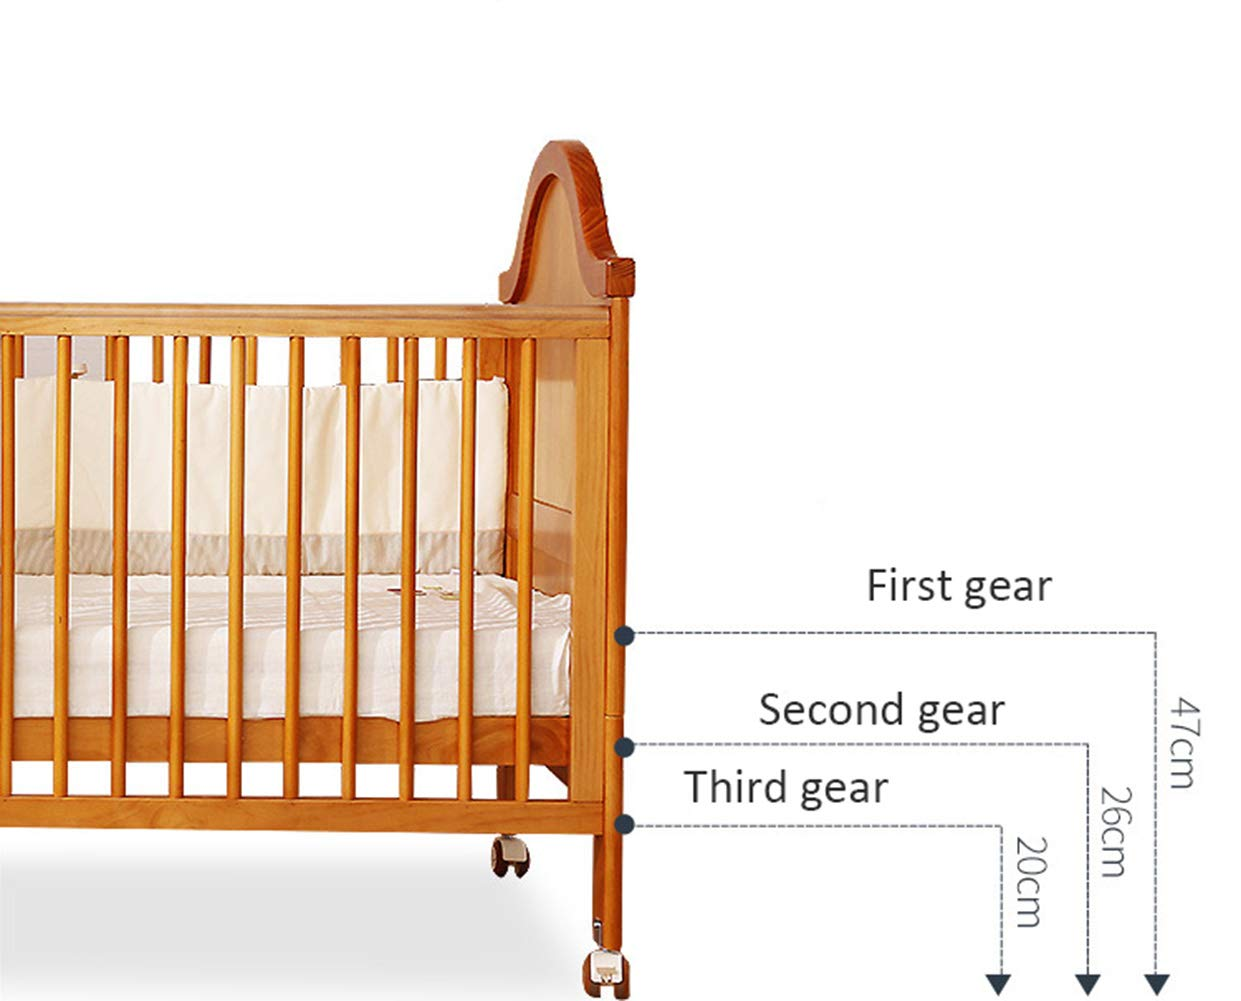 XUNMAIFLB Removable Wooden Baby Cot Bed, Toddler Bed, Solid Wood (inner Diameter: 1400 * 700mm) Multi-functional Crib, Play Bed Safety, Brown, 1460 * 774 * 1148mm XUNMAIFLB Rugged and durable: the wood is durable, oil-free, non-discoloring, and does not crack, increasing the life of the bed. Lockers: Large-capacity lockers, and more baby items can be stored in an orderly manner. It is important to see them easily and to take them easily. Strong load-bearing solid wood bed: widened and thickened skeleton The moon ship coir mattress has a static load of 50kg. 4